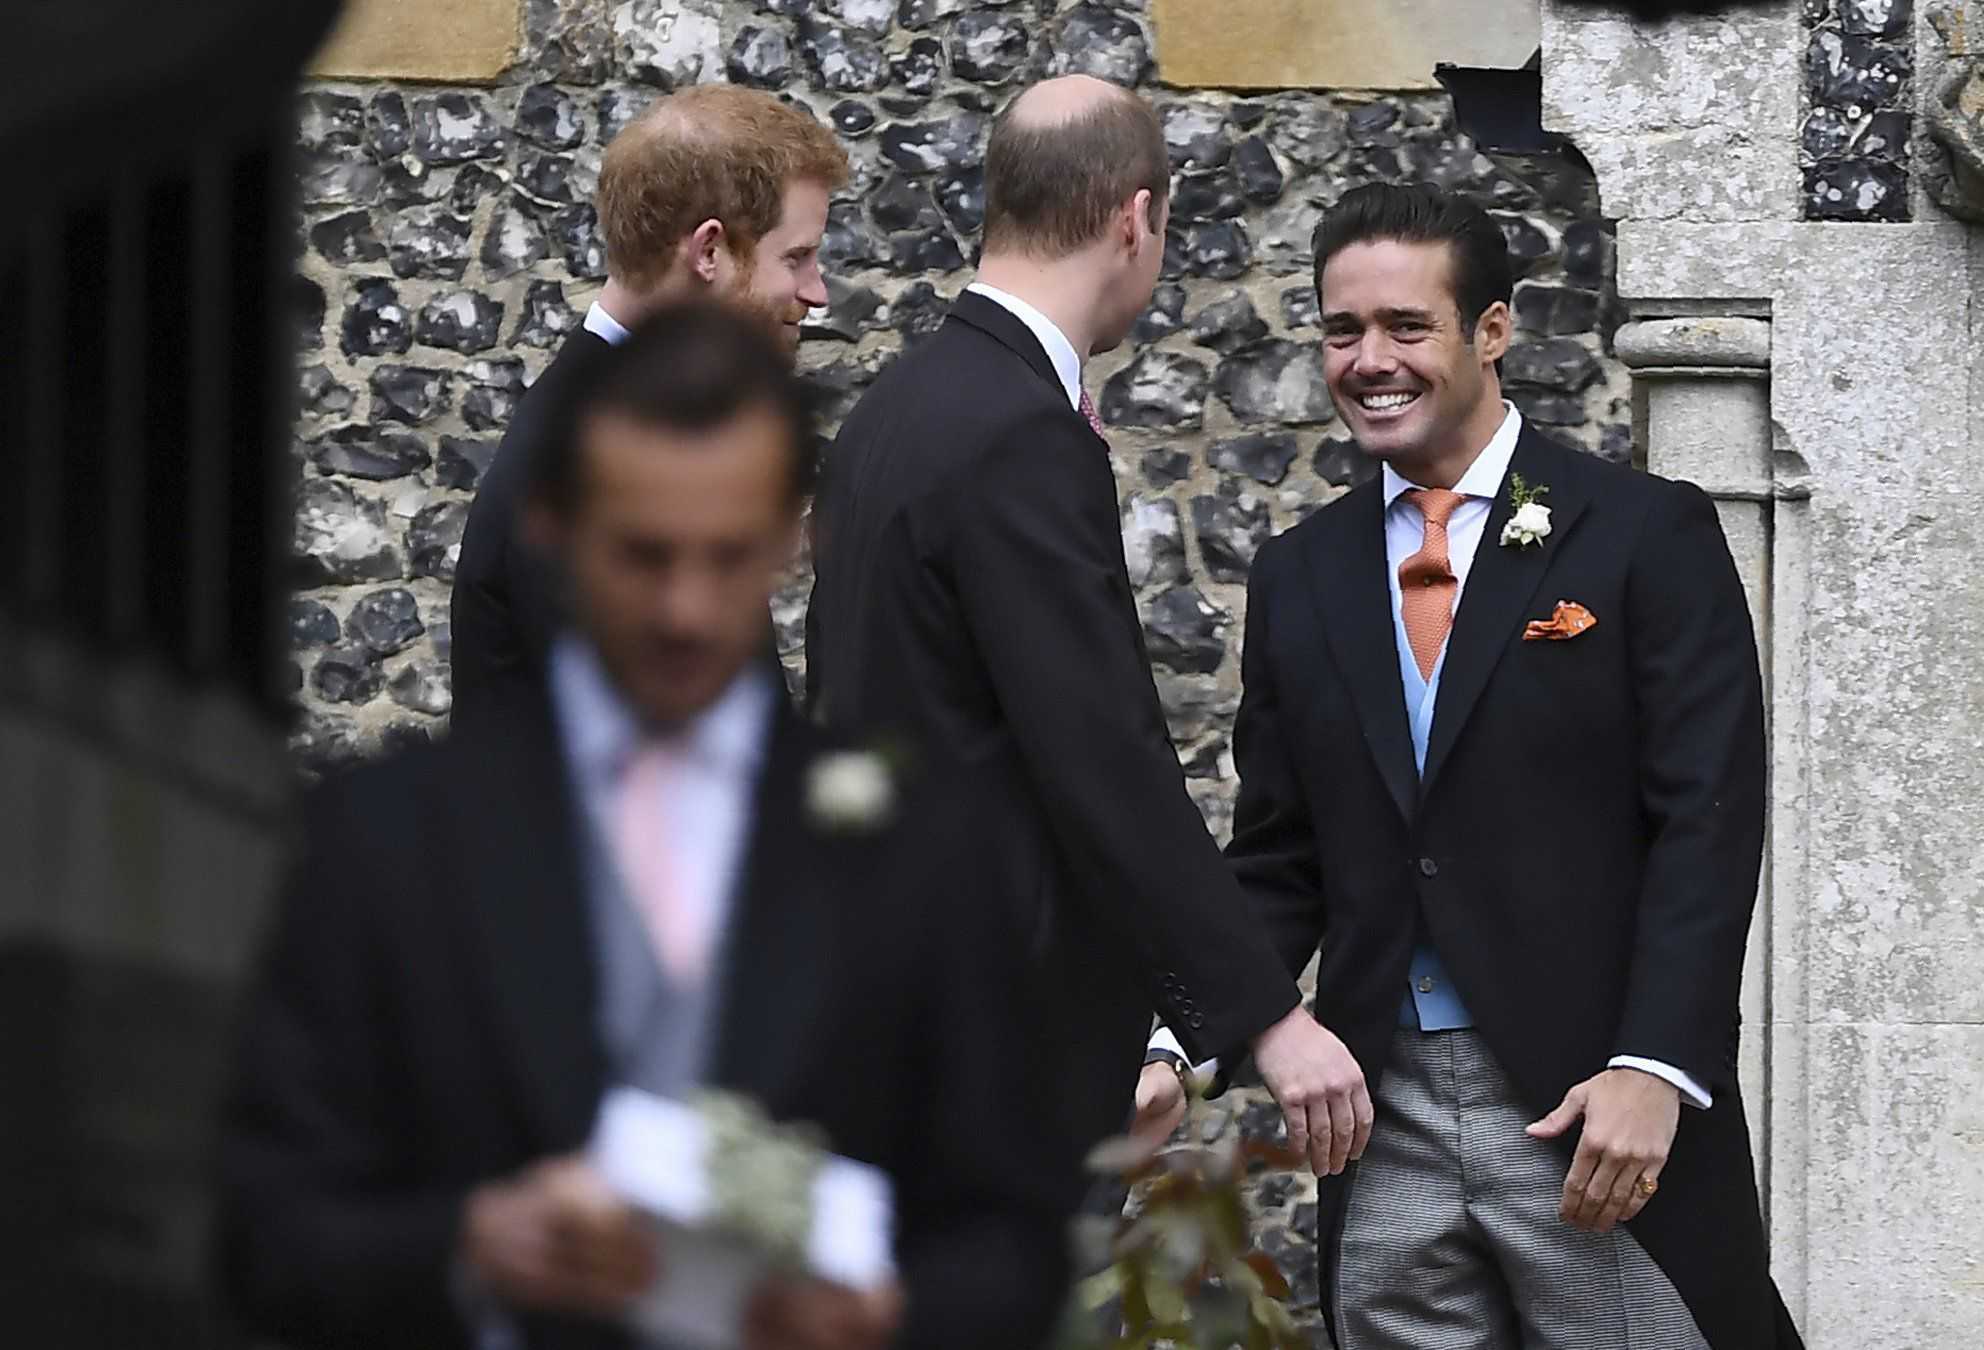 Spencer Matthews and Donna Air arrive for Pippa Middleton and James Matthews' wedding in Berkshire